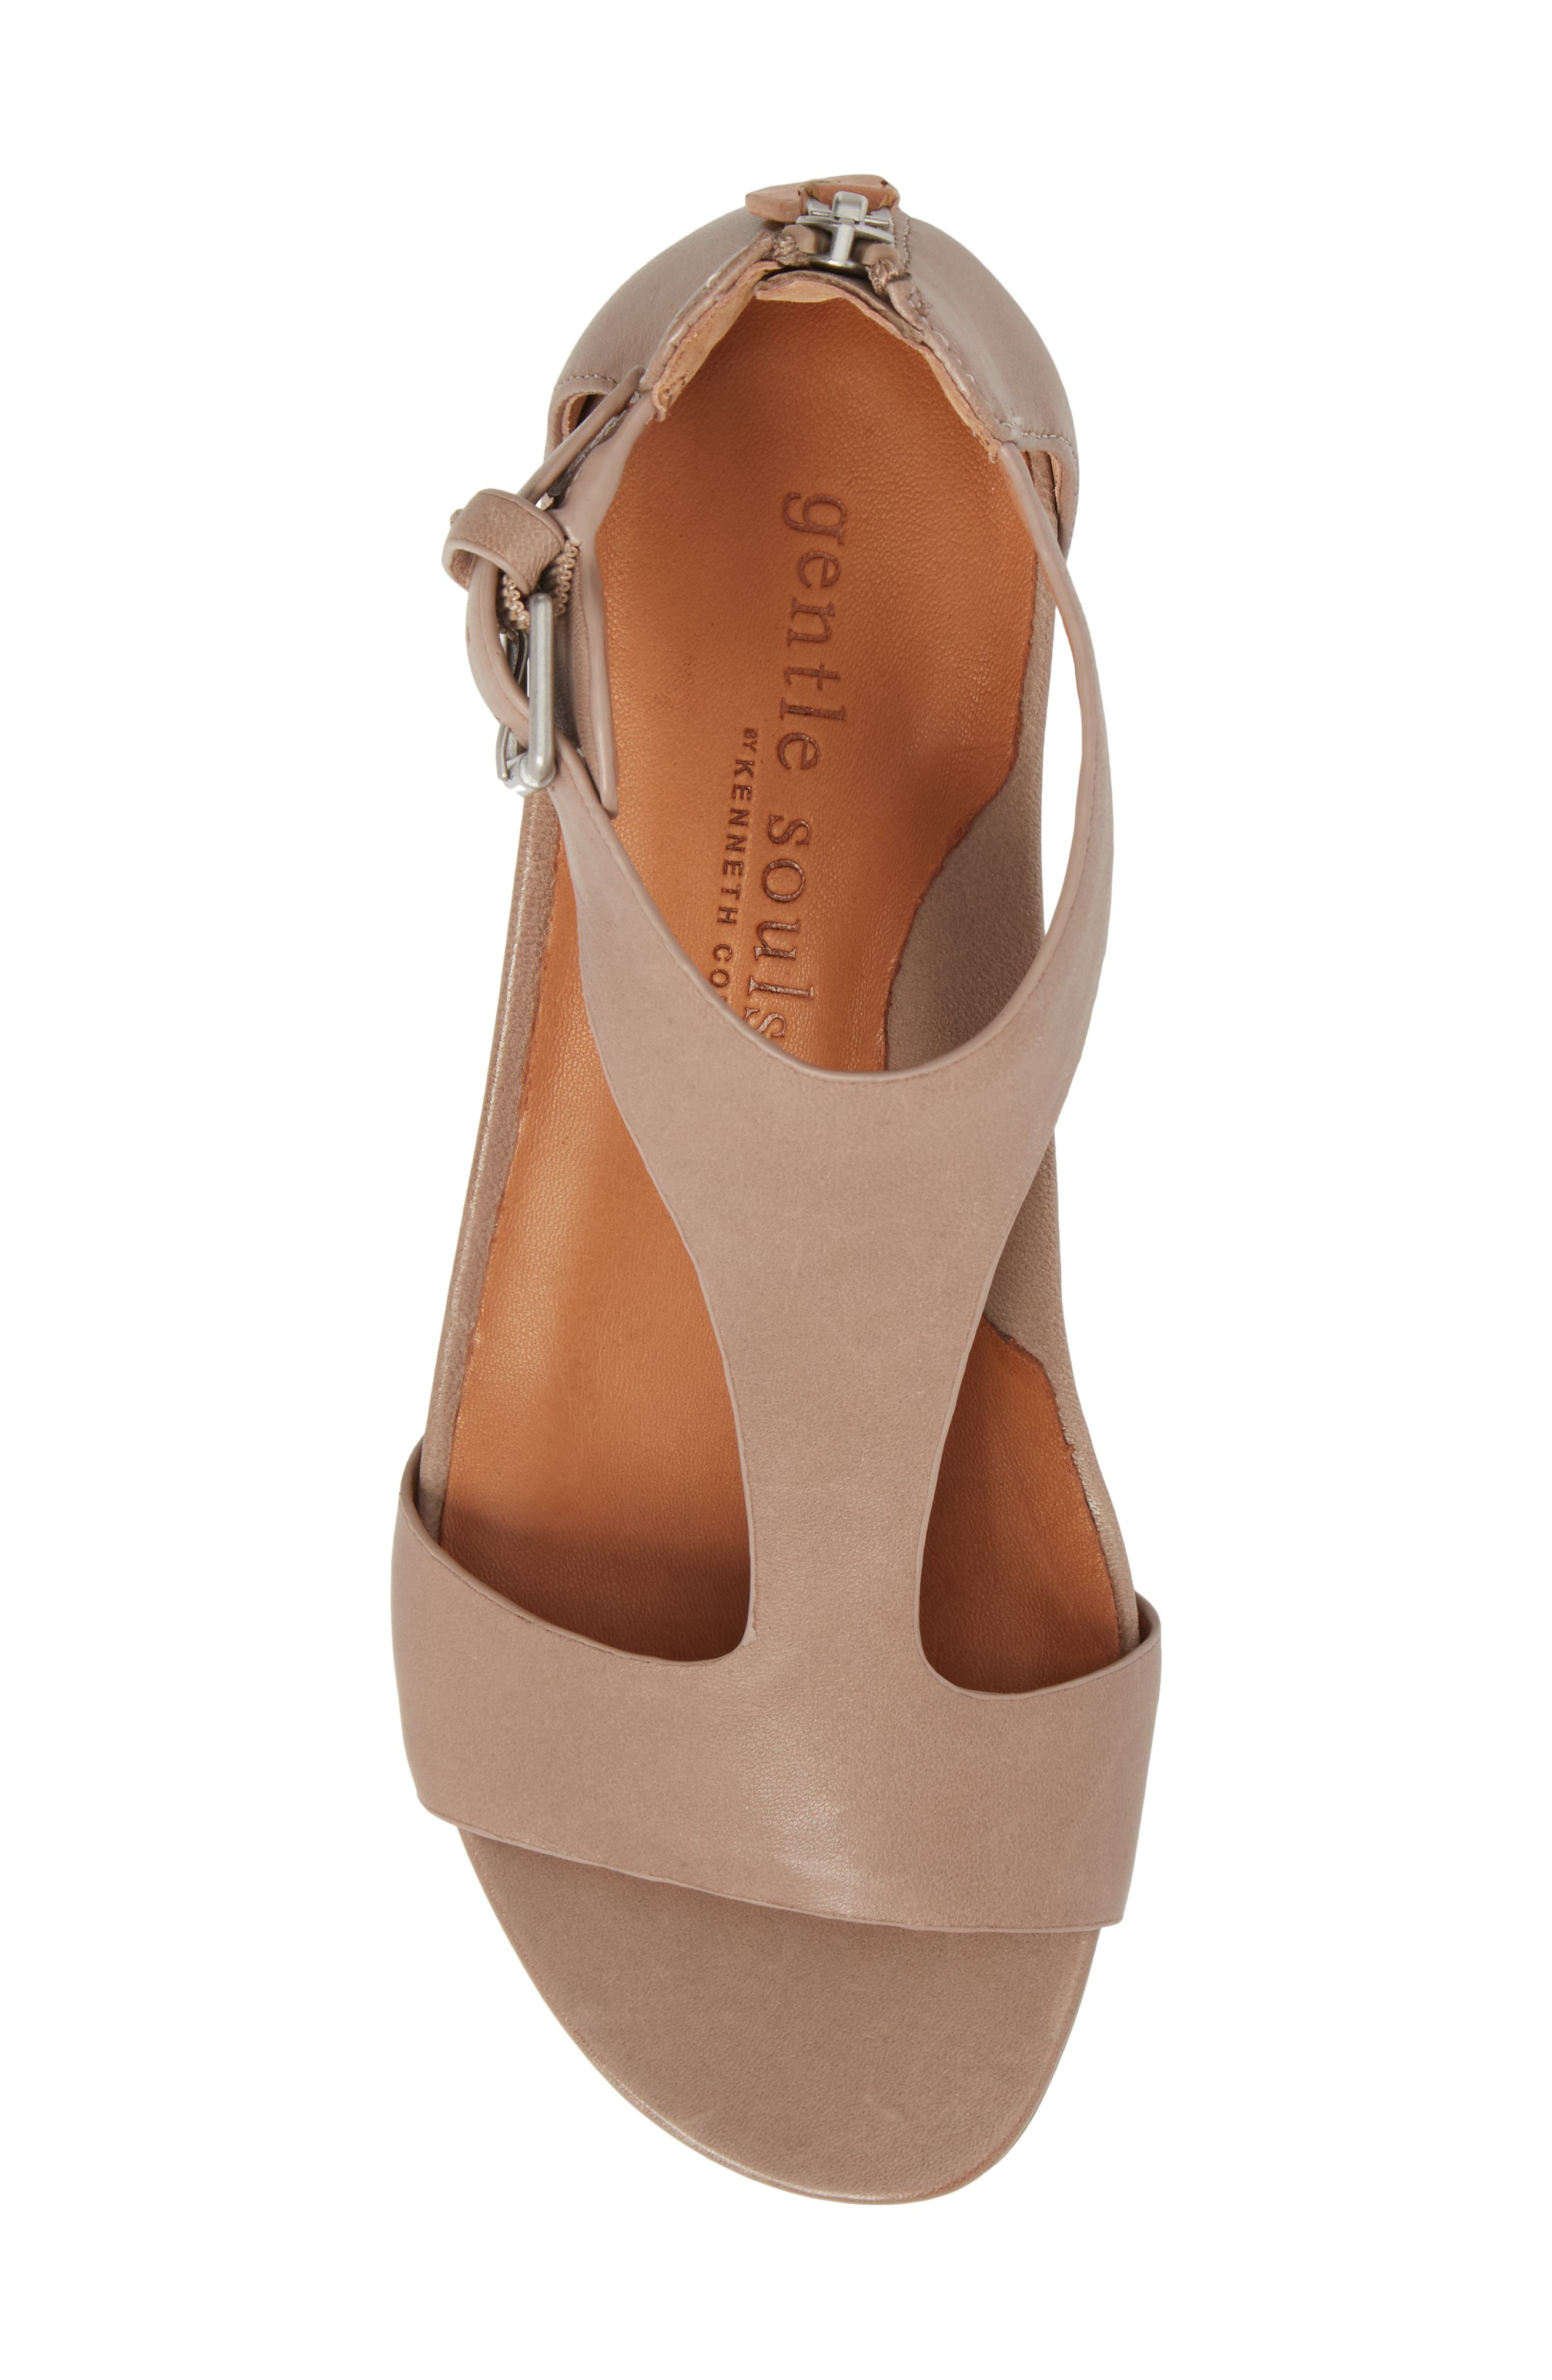 GENTLE SOULS BY KENNETH COLE, Gisele Wedge Sandal, Alternate thumbnail 5, color, PUTTY LEATHER